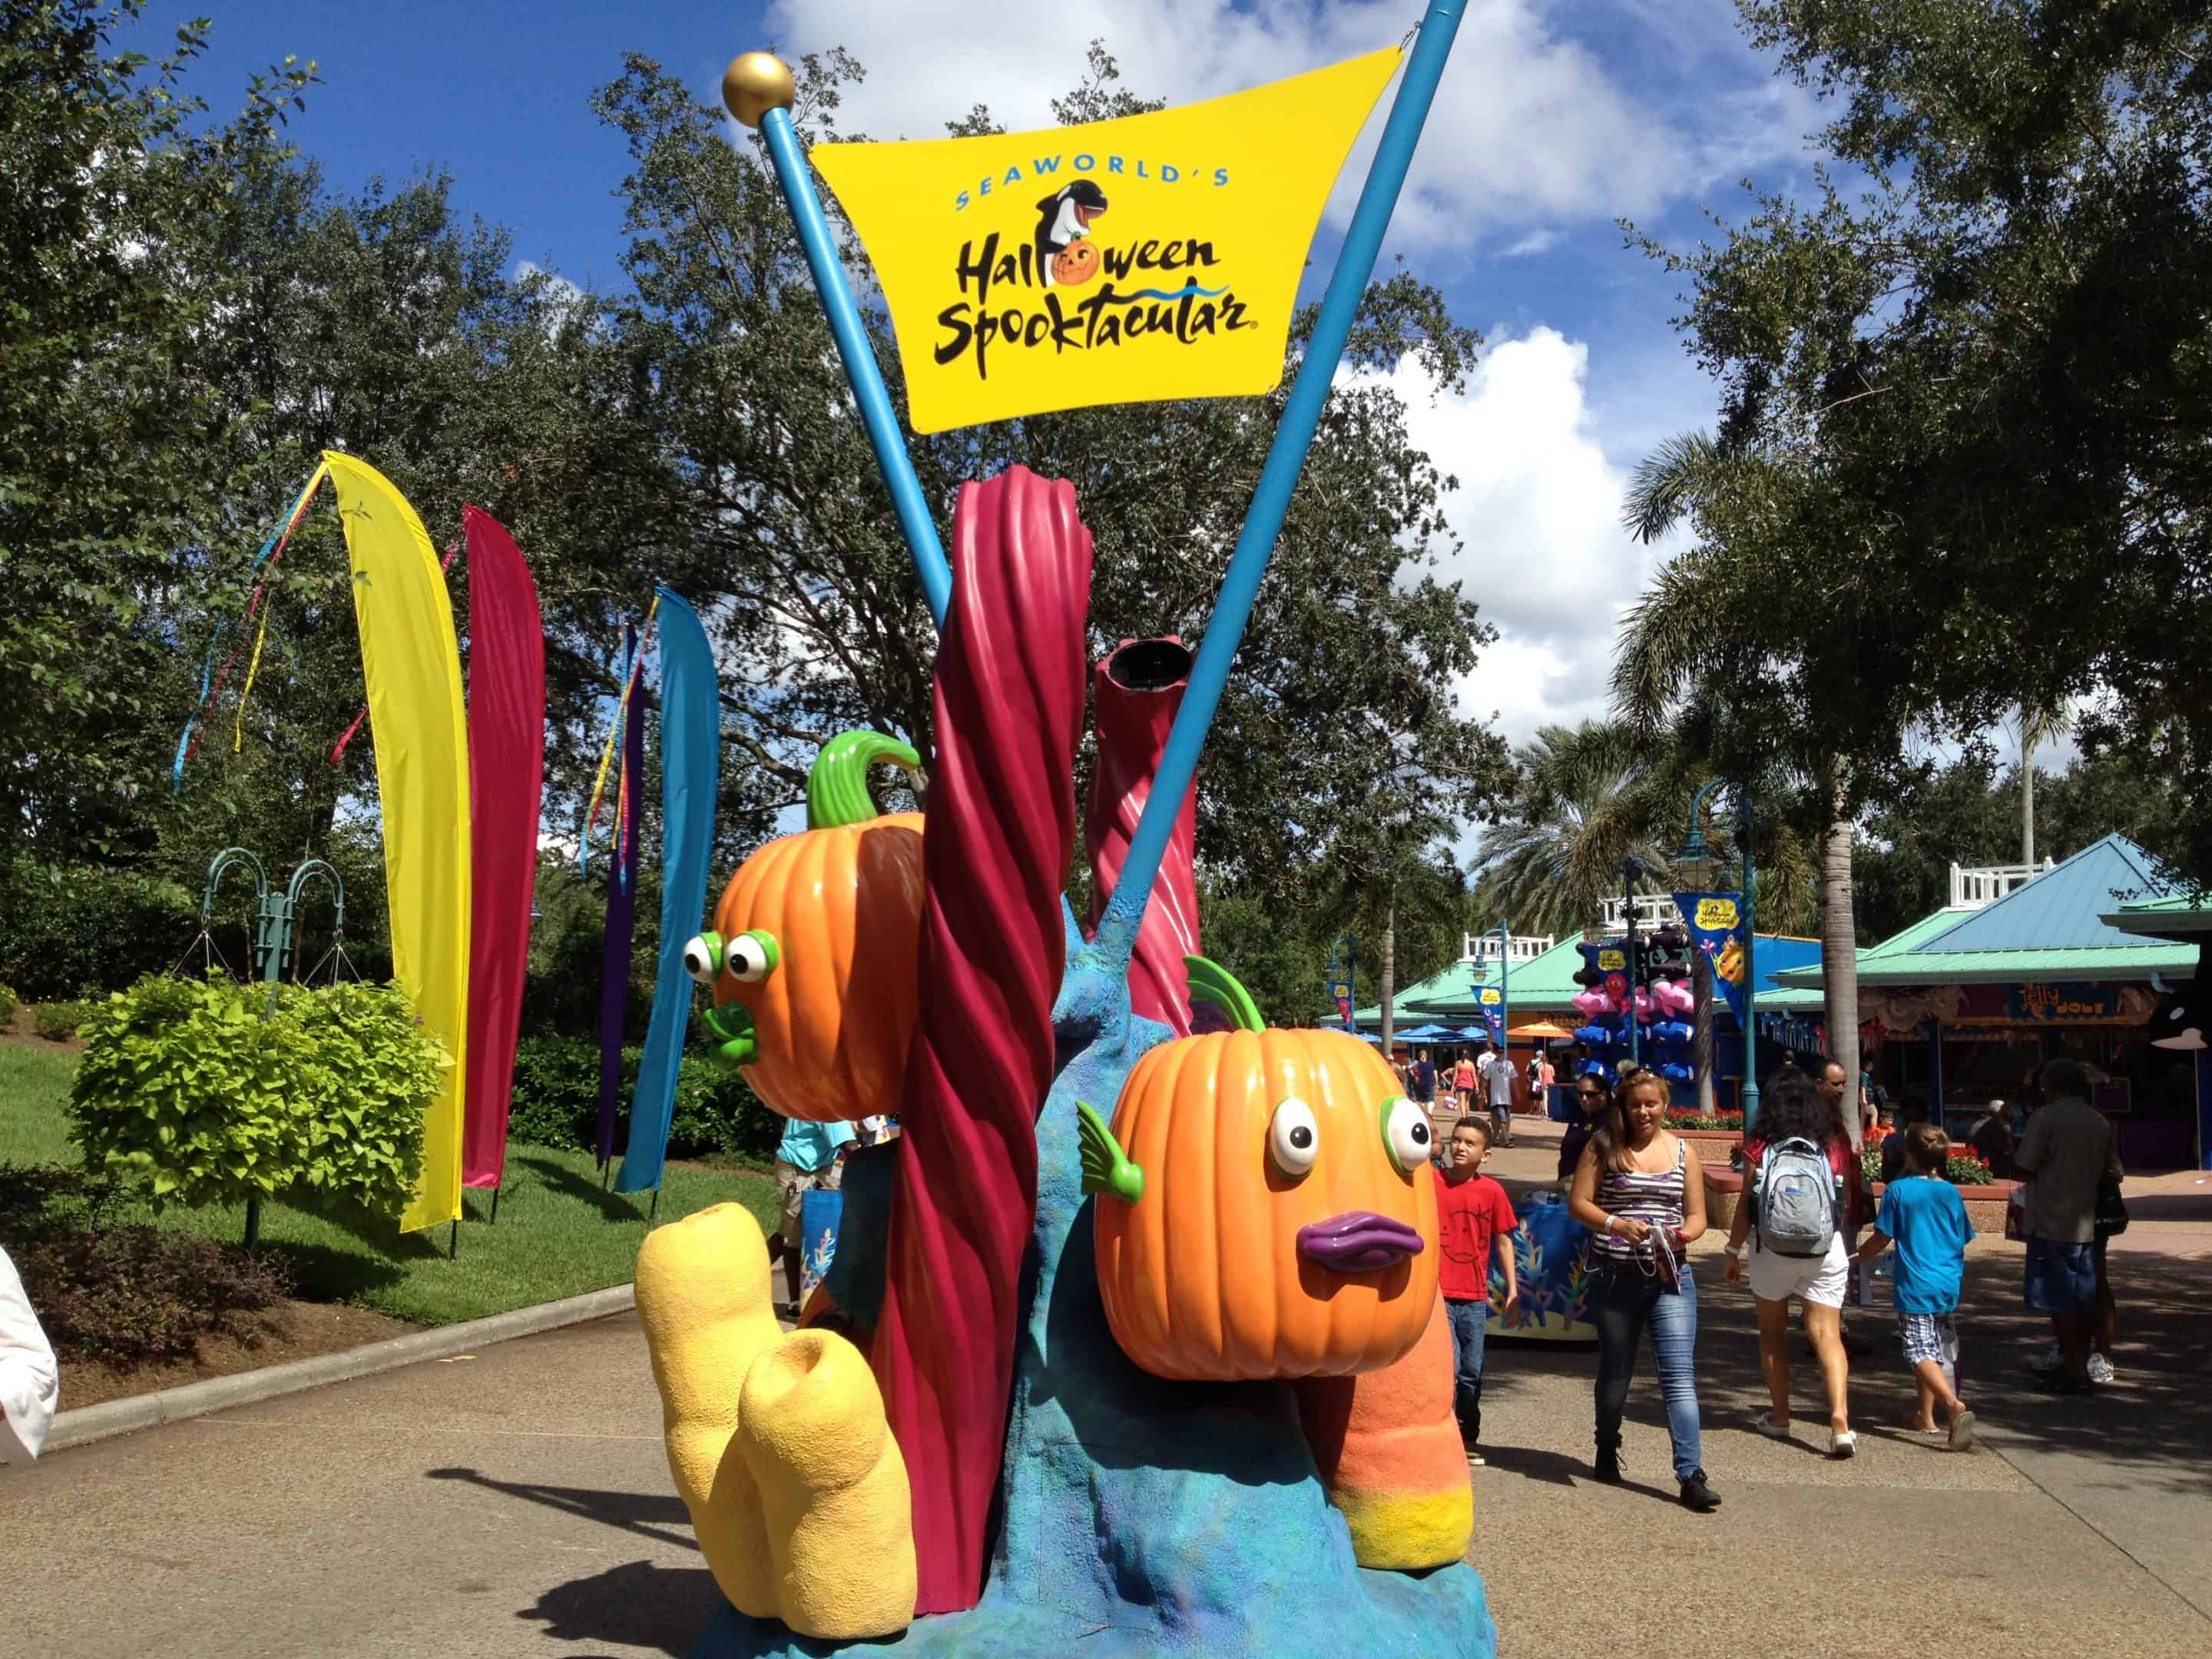 SeaWorld Spooktacular Offers Family Fun For All – Included In Regular Ticket!